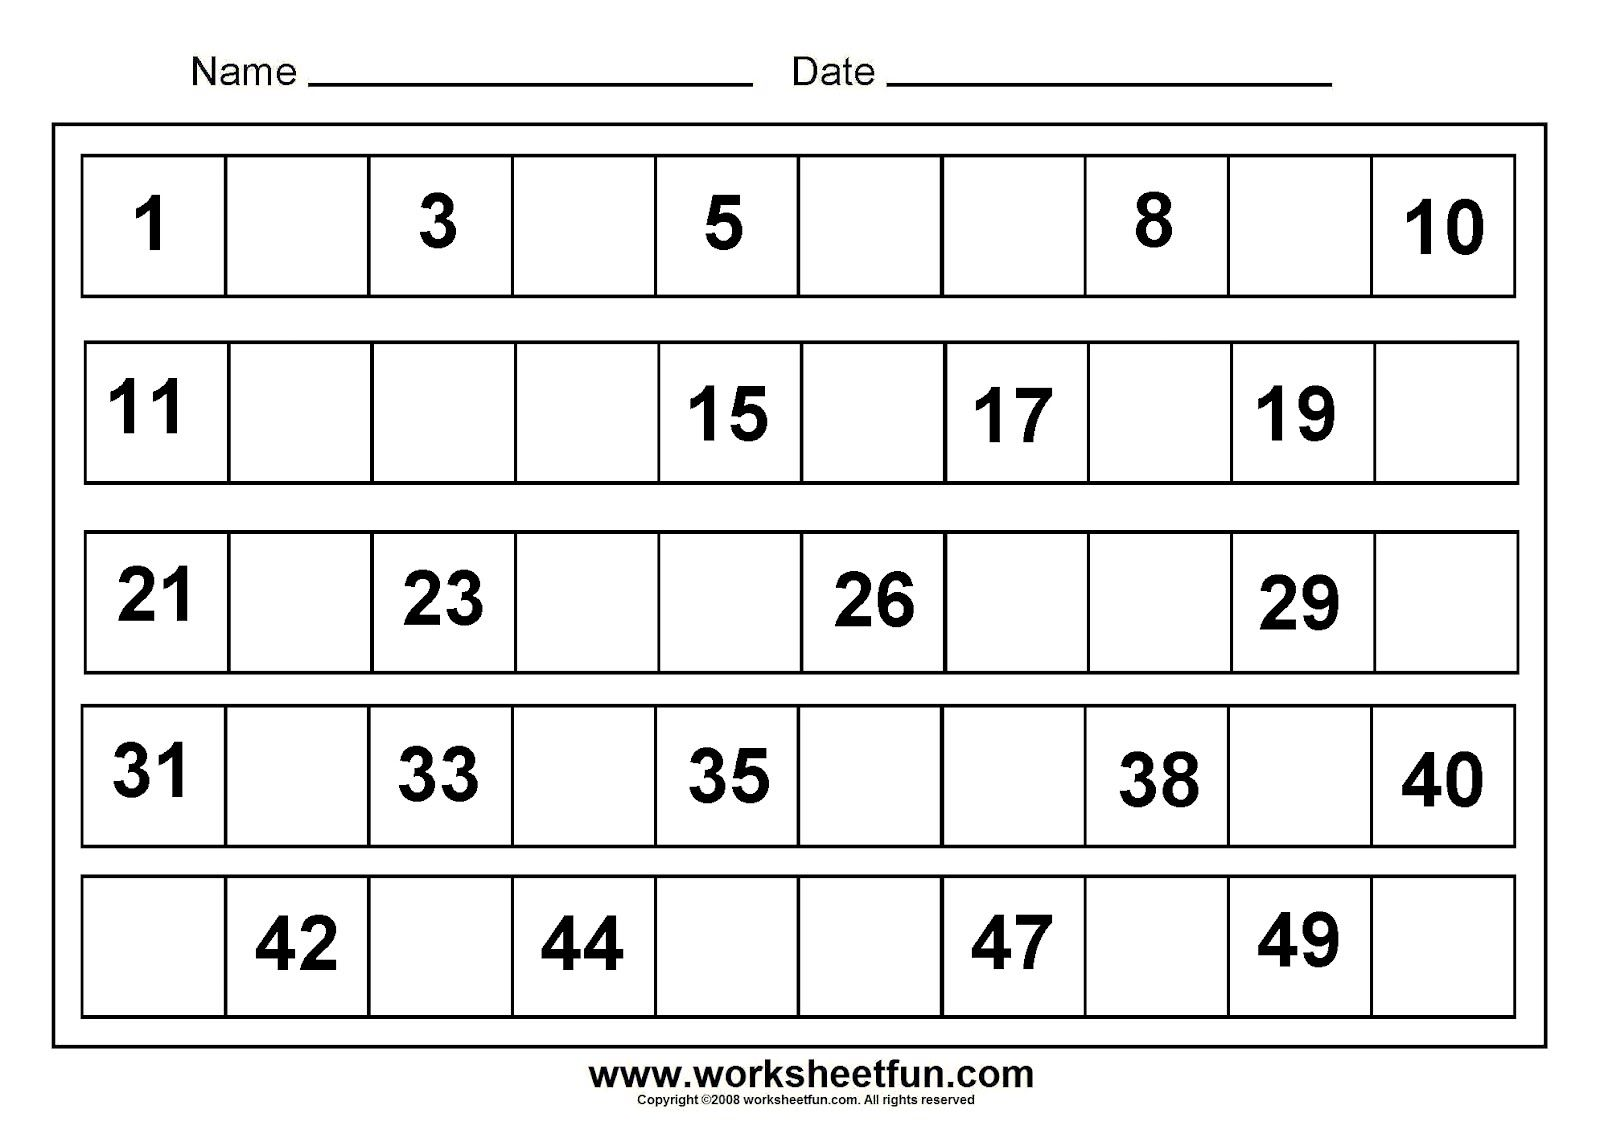 Worksheet Free Math Printables For Kindergarten math printable worksheets kindergarten 2017 calendar printables for free for